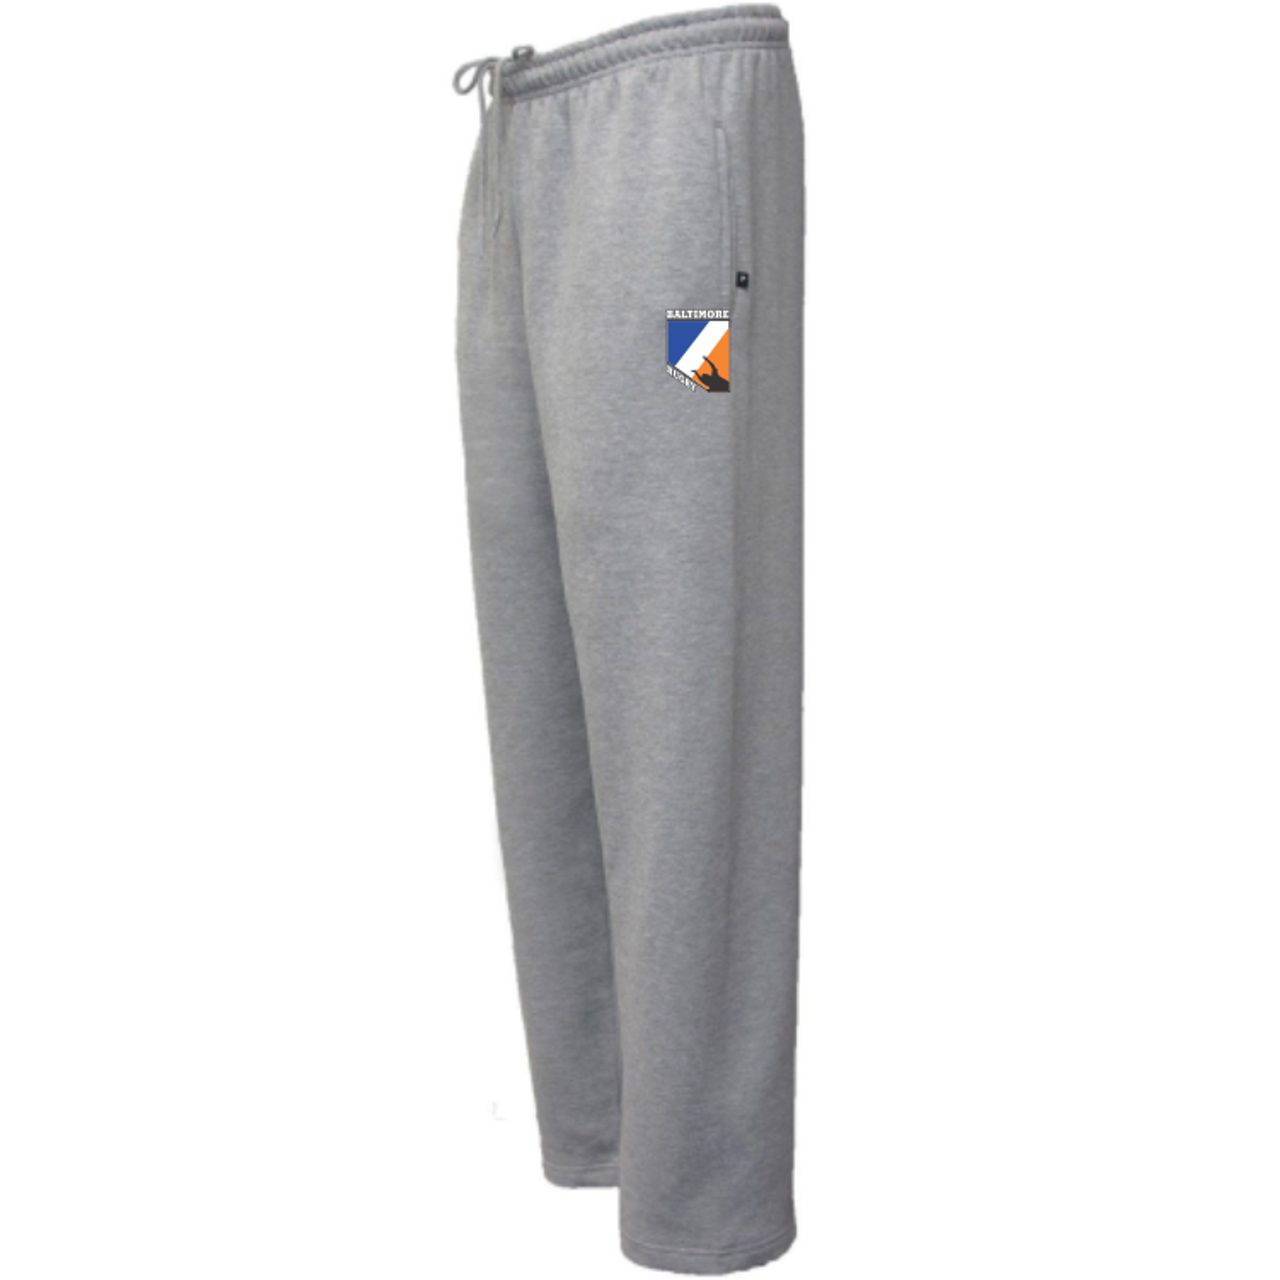 Baltimore (Poly) Rugby Sweatpant